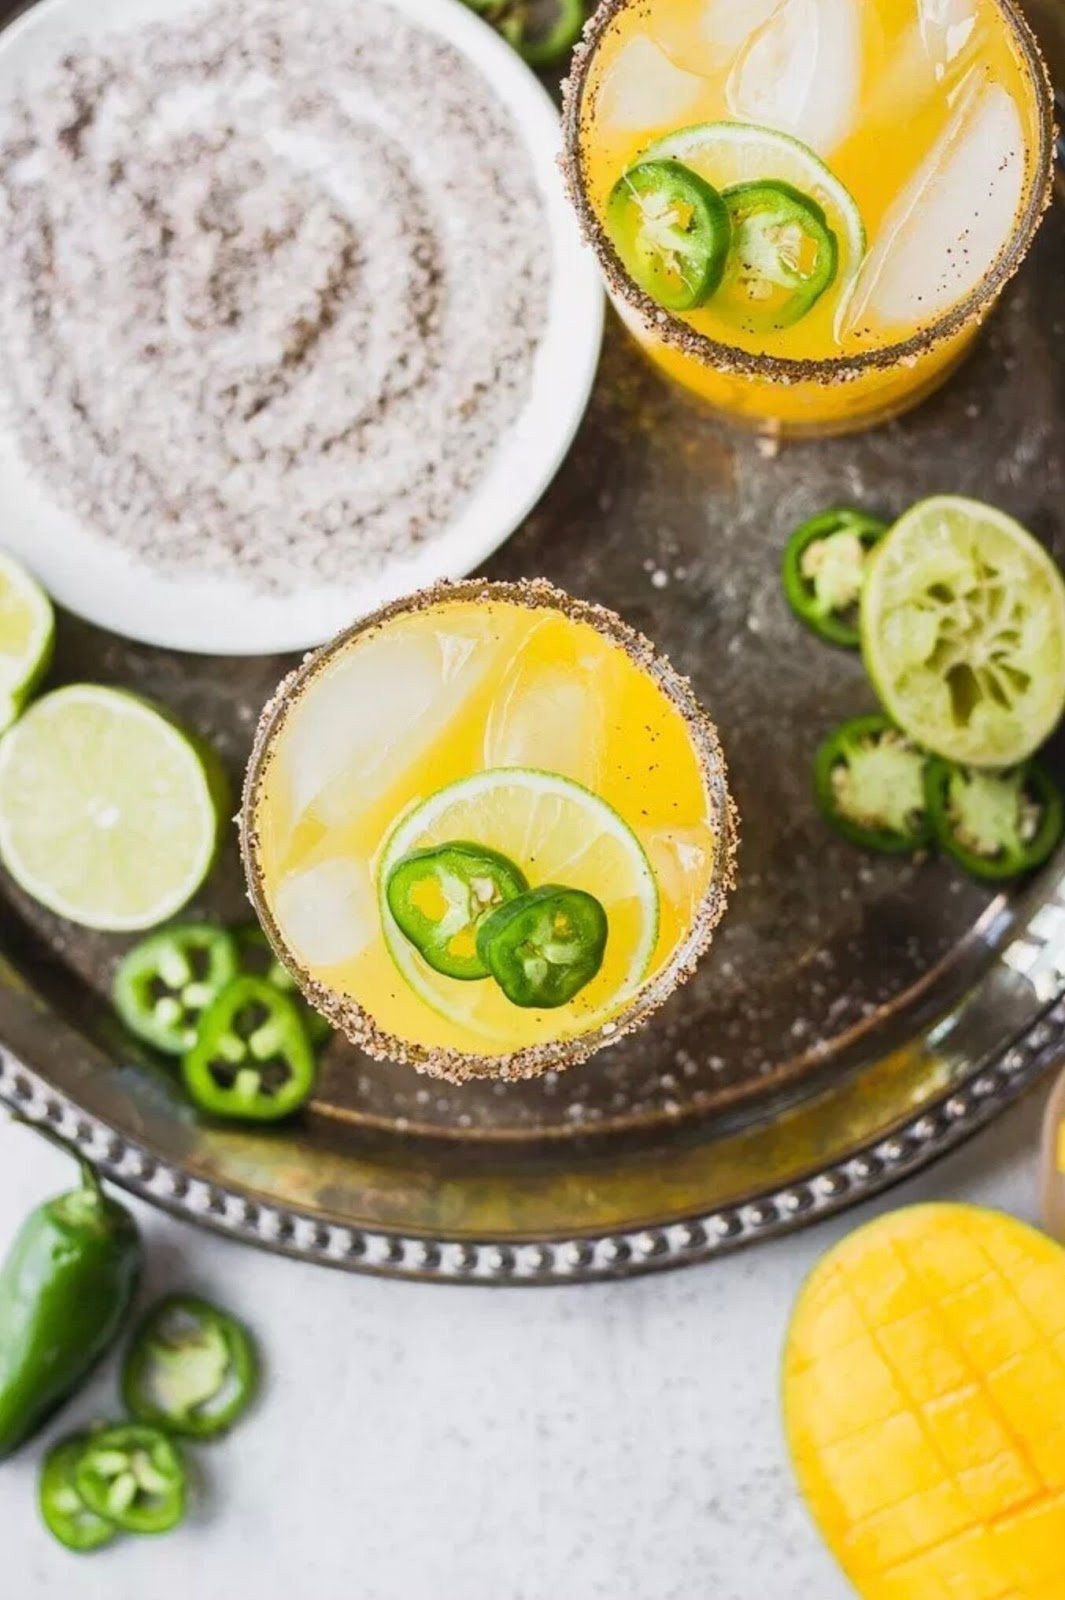 jalapeno margarita recipe perfect for summertime drinks in Atlanta